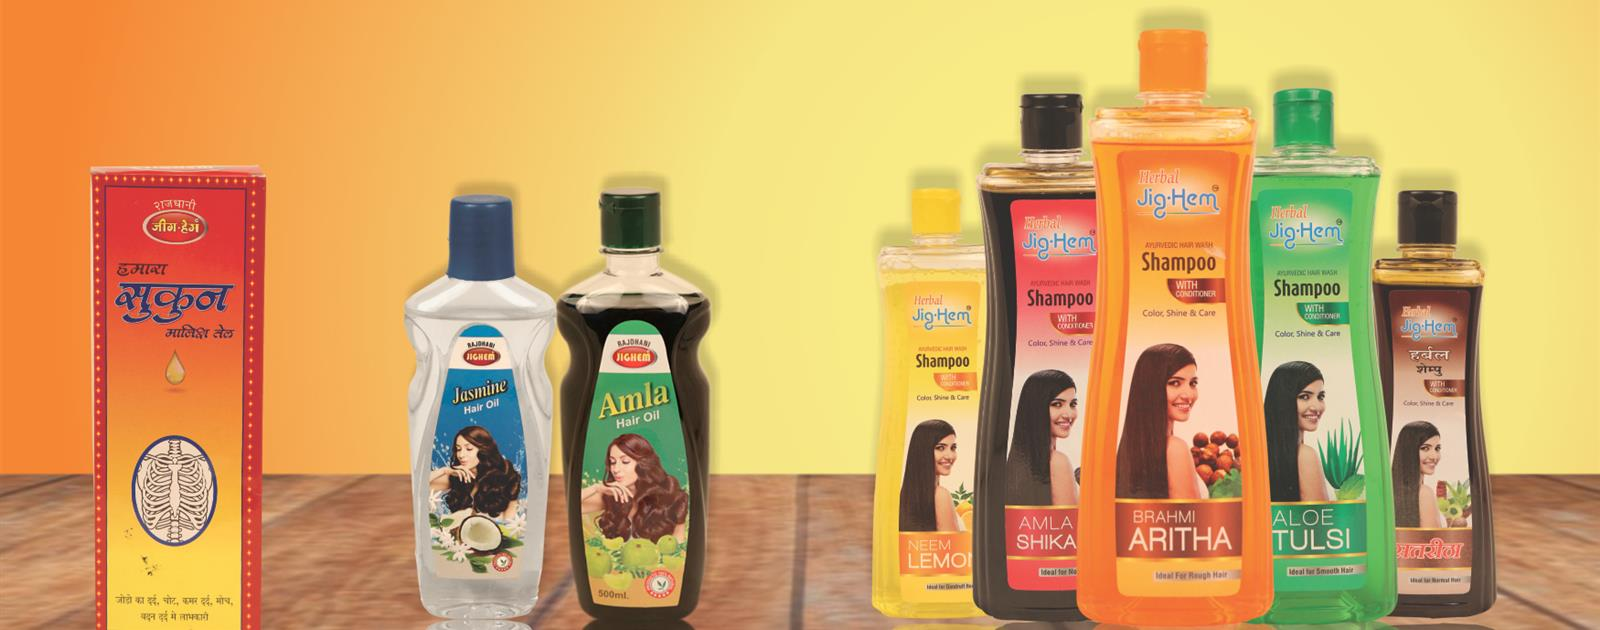 Rajdhani Cosmetic Products - JigHem